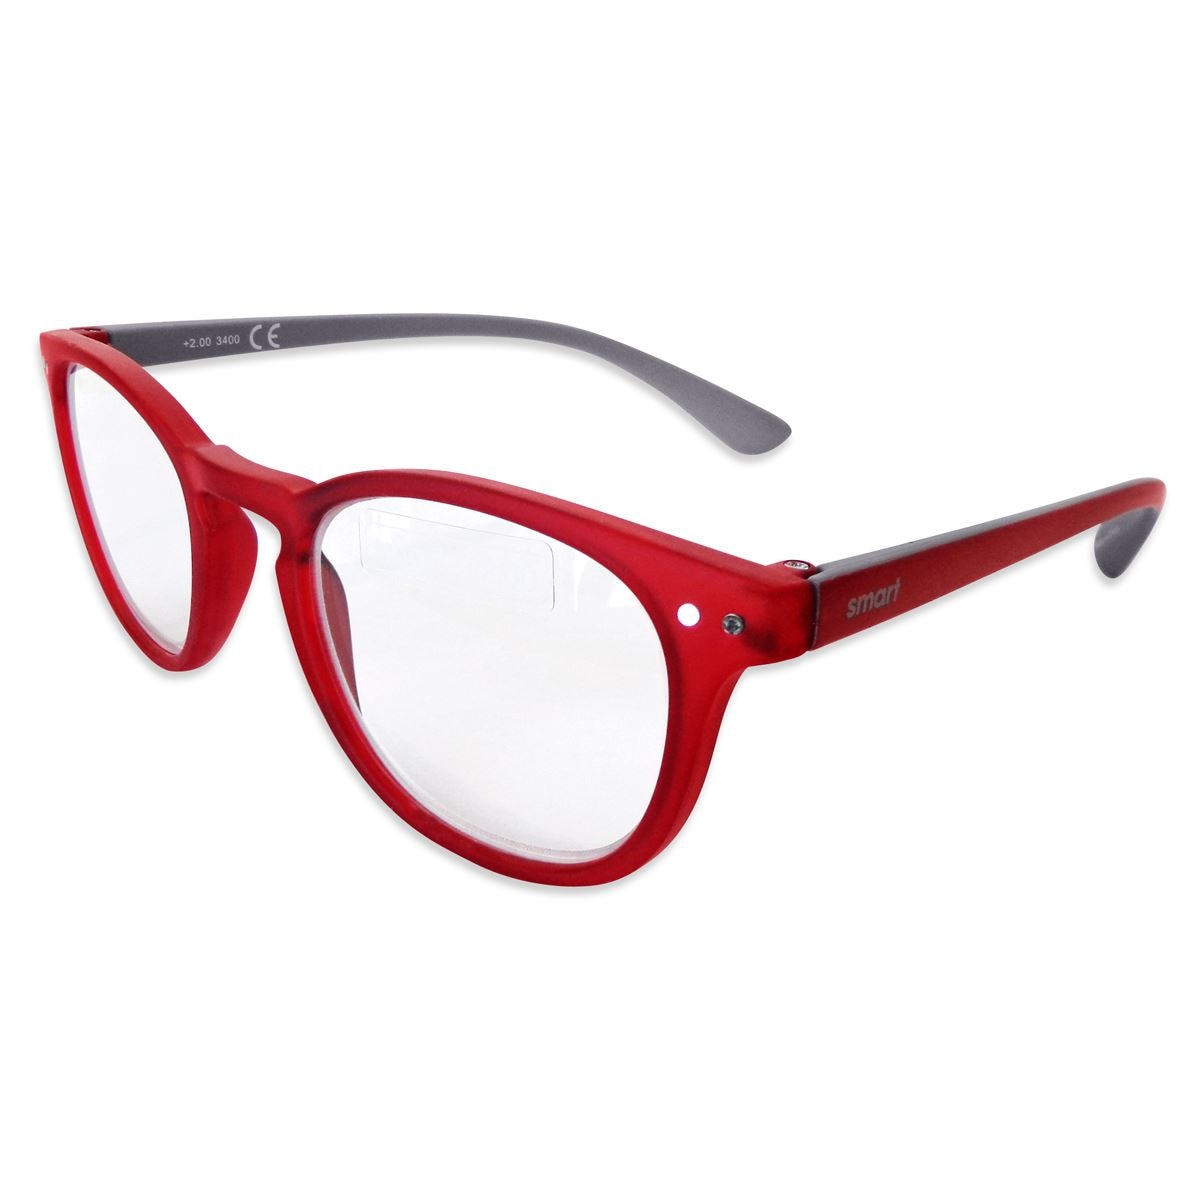 Lente pregraduado.smart reader round matt red +3.00  - Sanborns